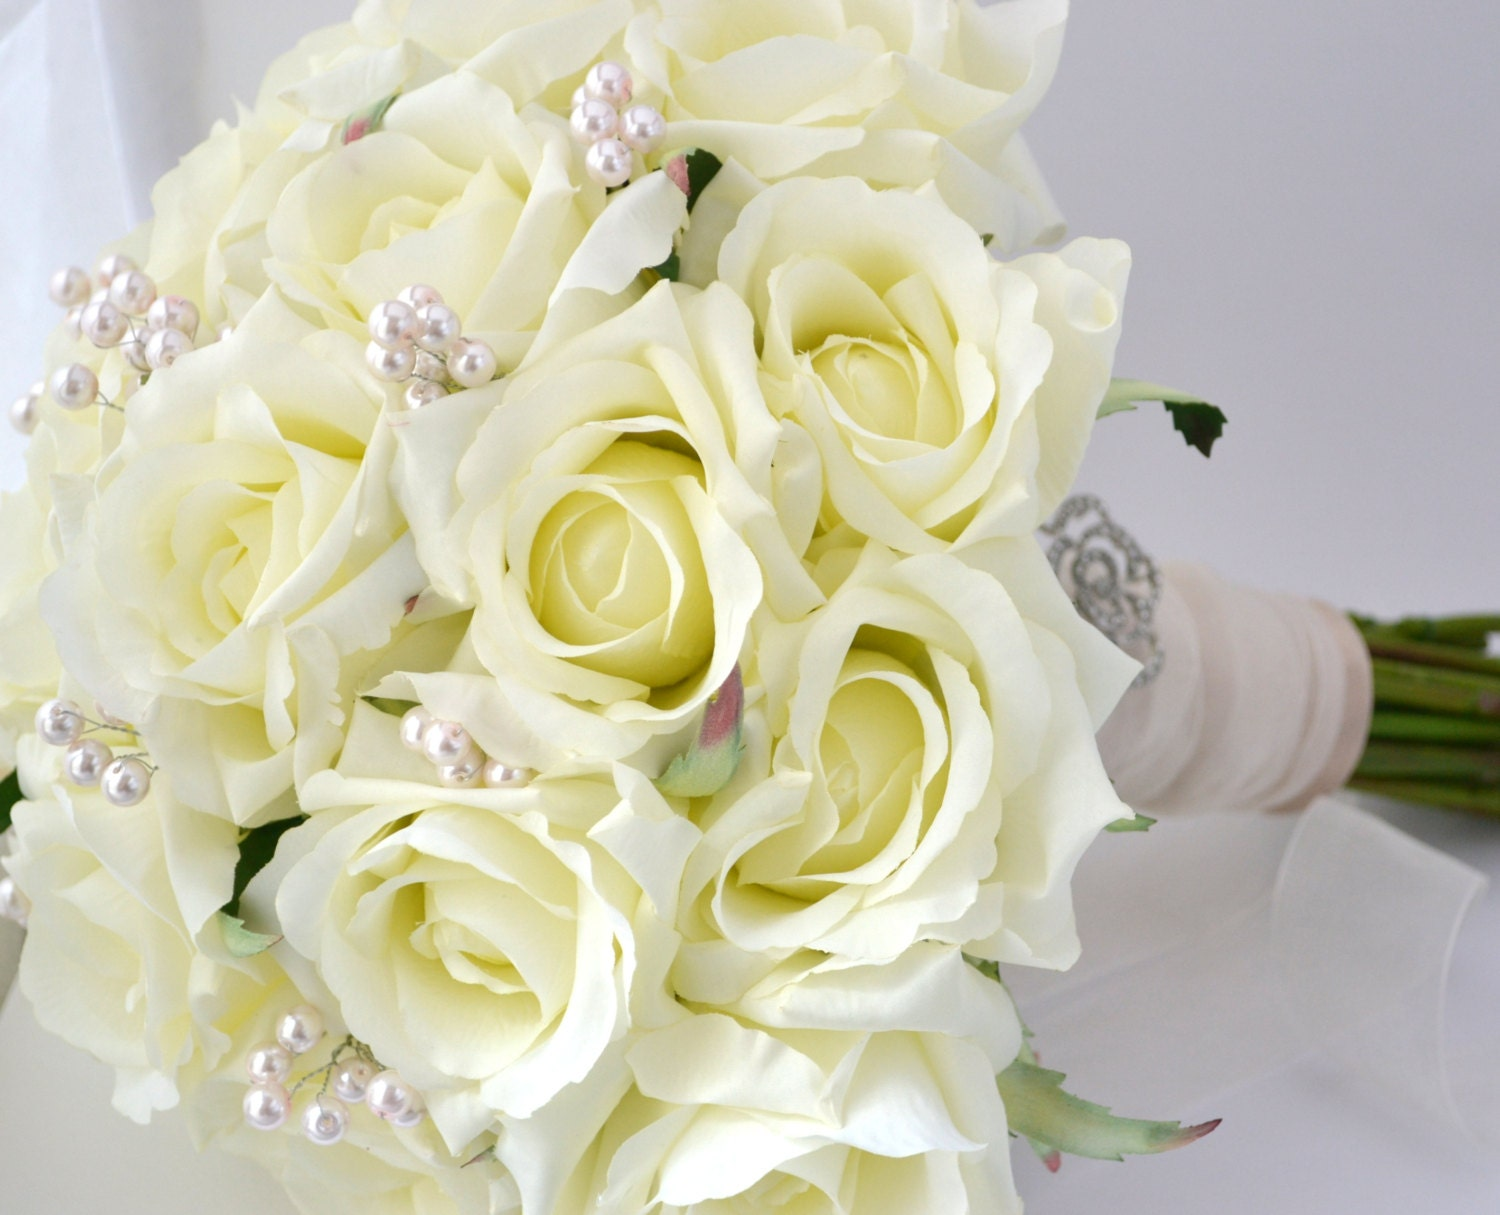 tag white rose bouquet - photo #32